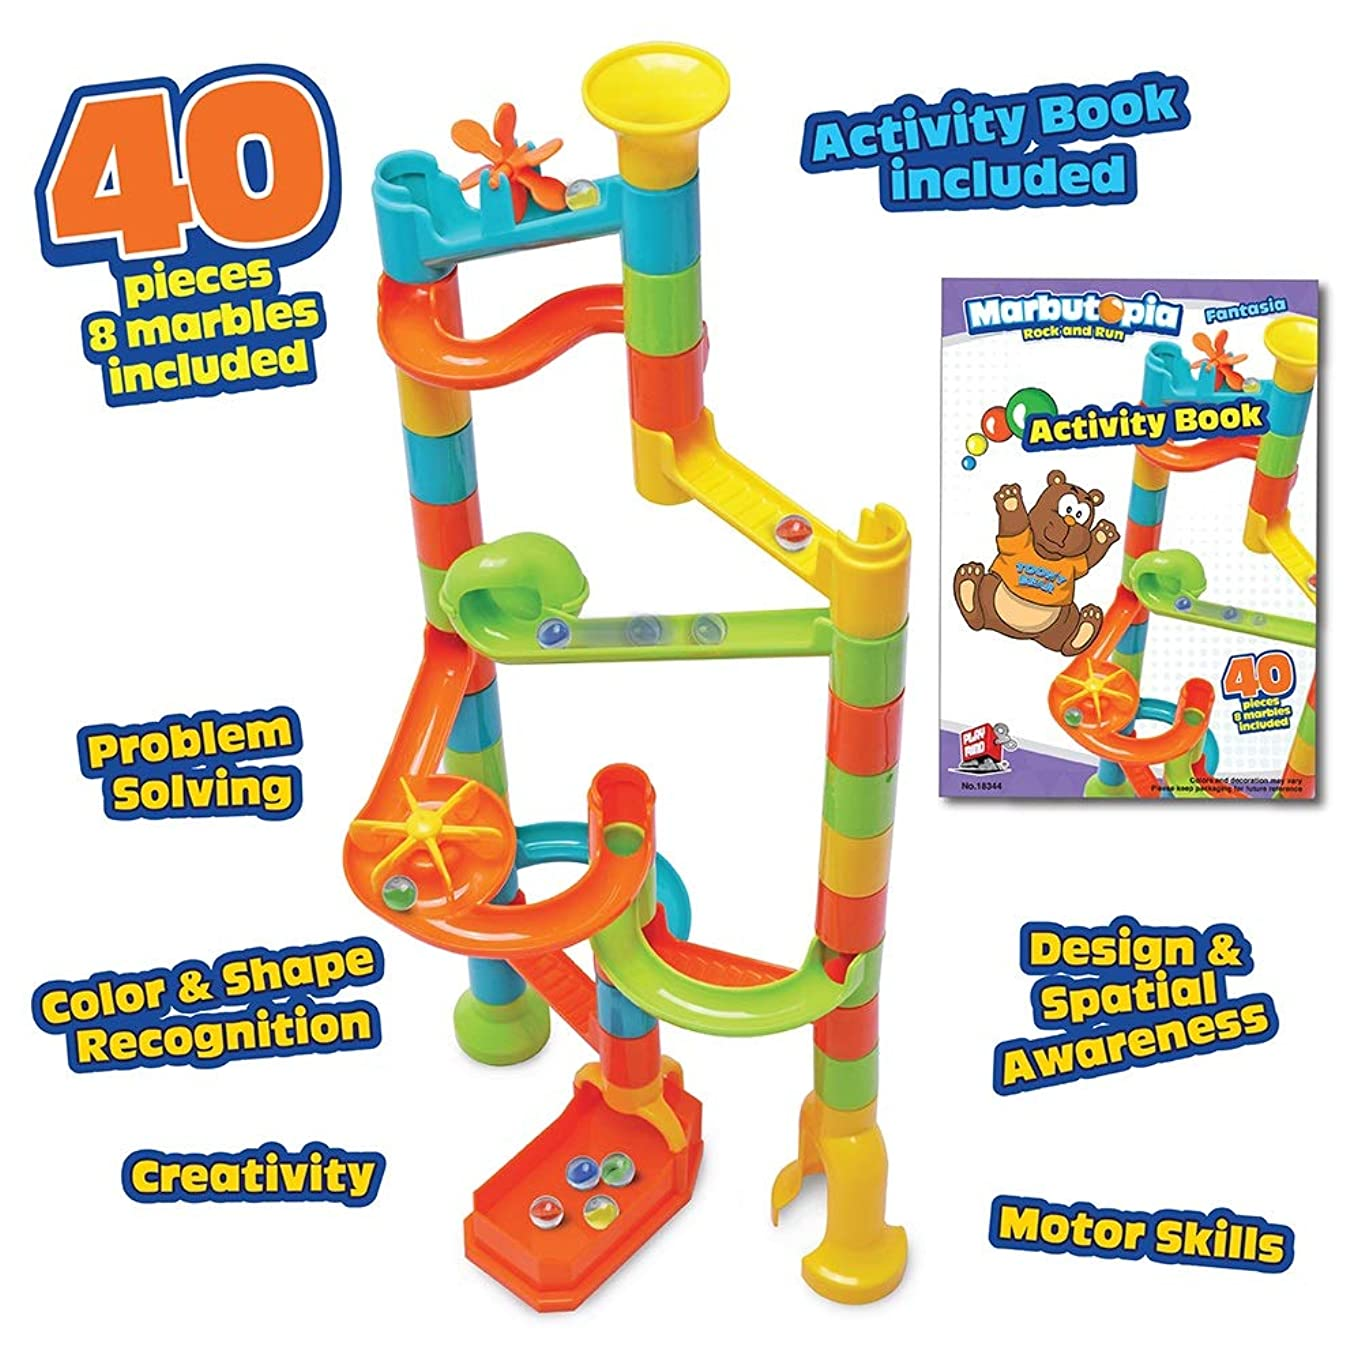 Playmind Marbutopia Fantasia Set (40 pcs) Best Marble Run STEM Toy for Kid Education a73911603